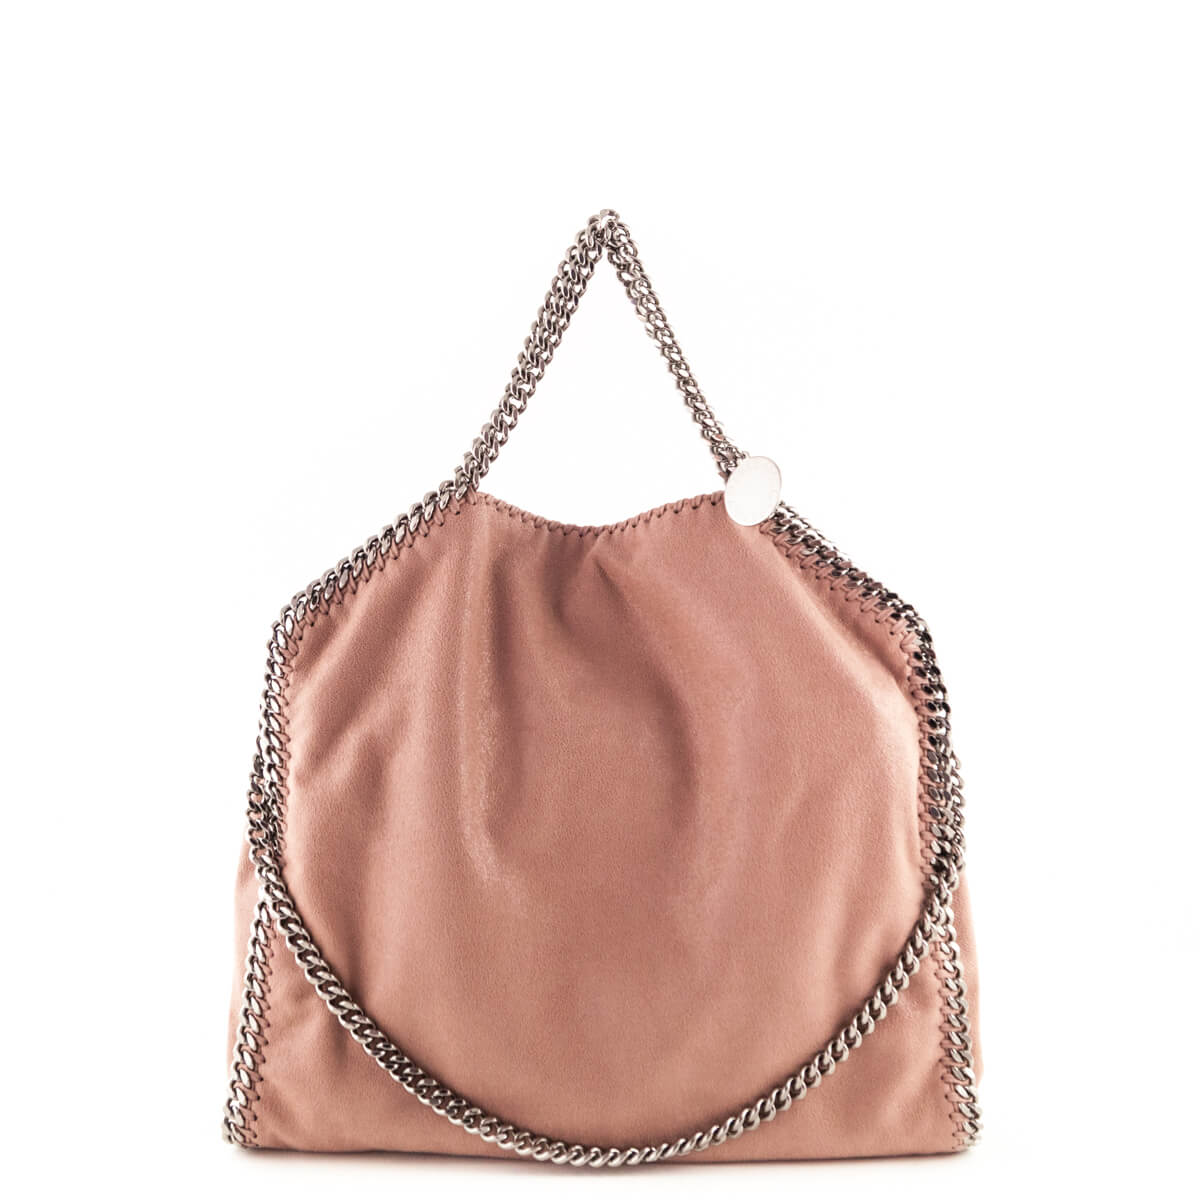 ad7e3a9086f3 Stella McCartney Rose Shaggy Deer Medium Falabella Fold-Over Tote - LOVE  that BAG ...